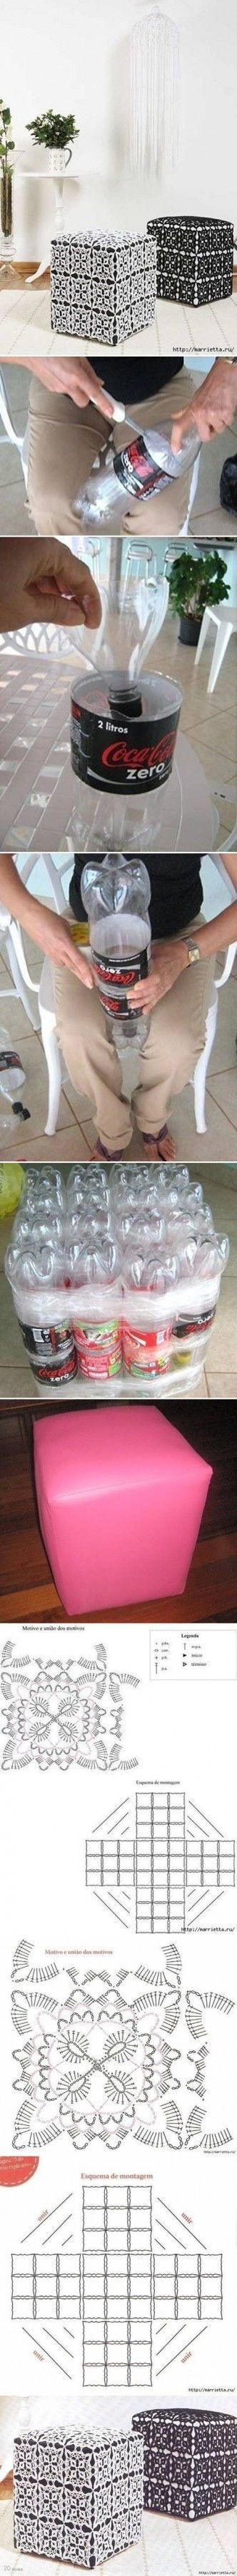 DIY Ottoman Out of Plastic Bottles DIY Projects